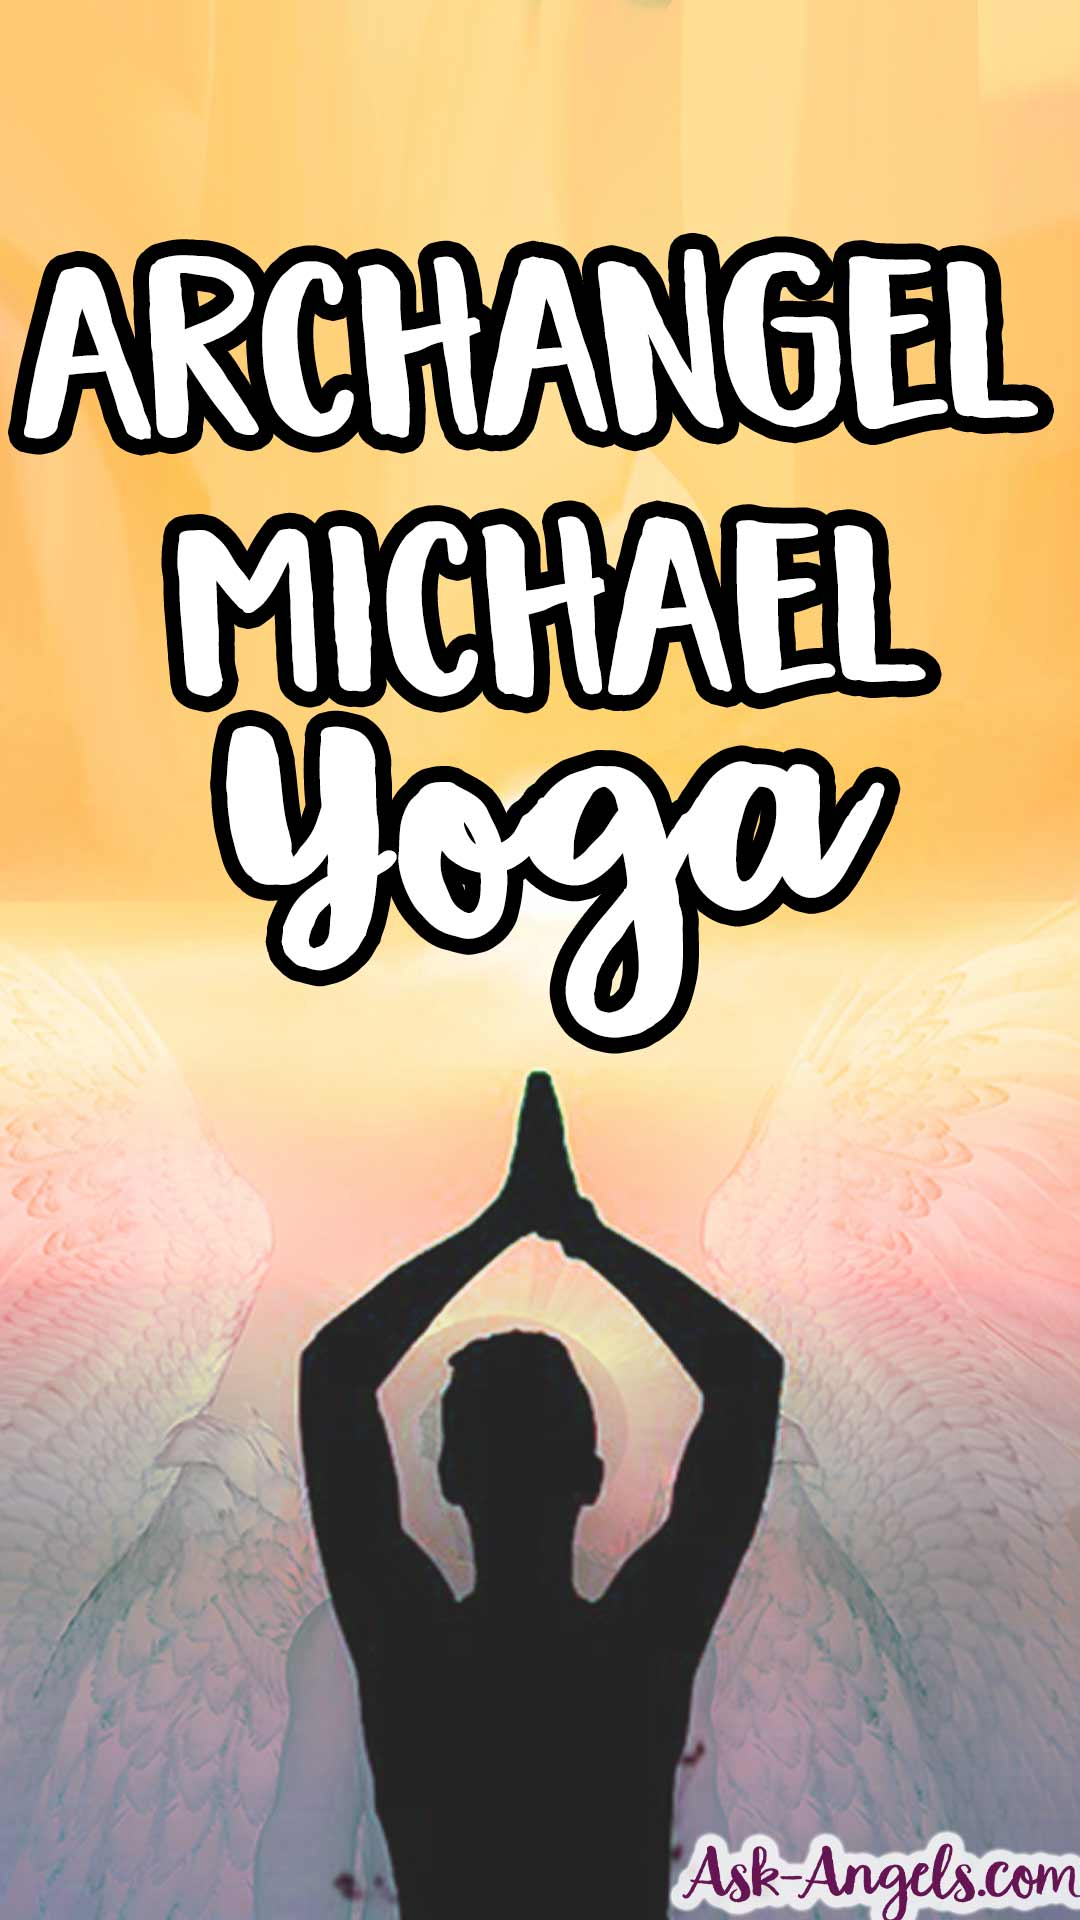 Archangel Michael Yoga - A Powerful Cognitive Yoga Practive